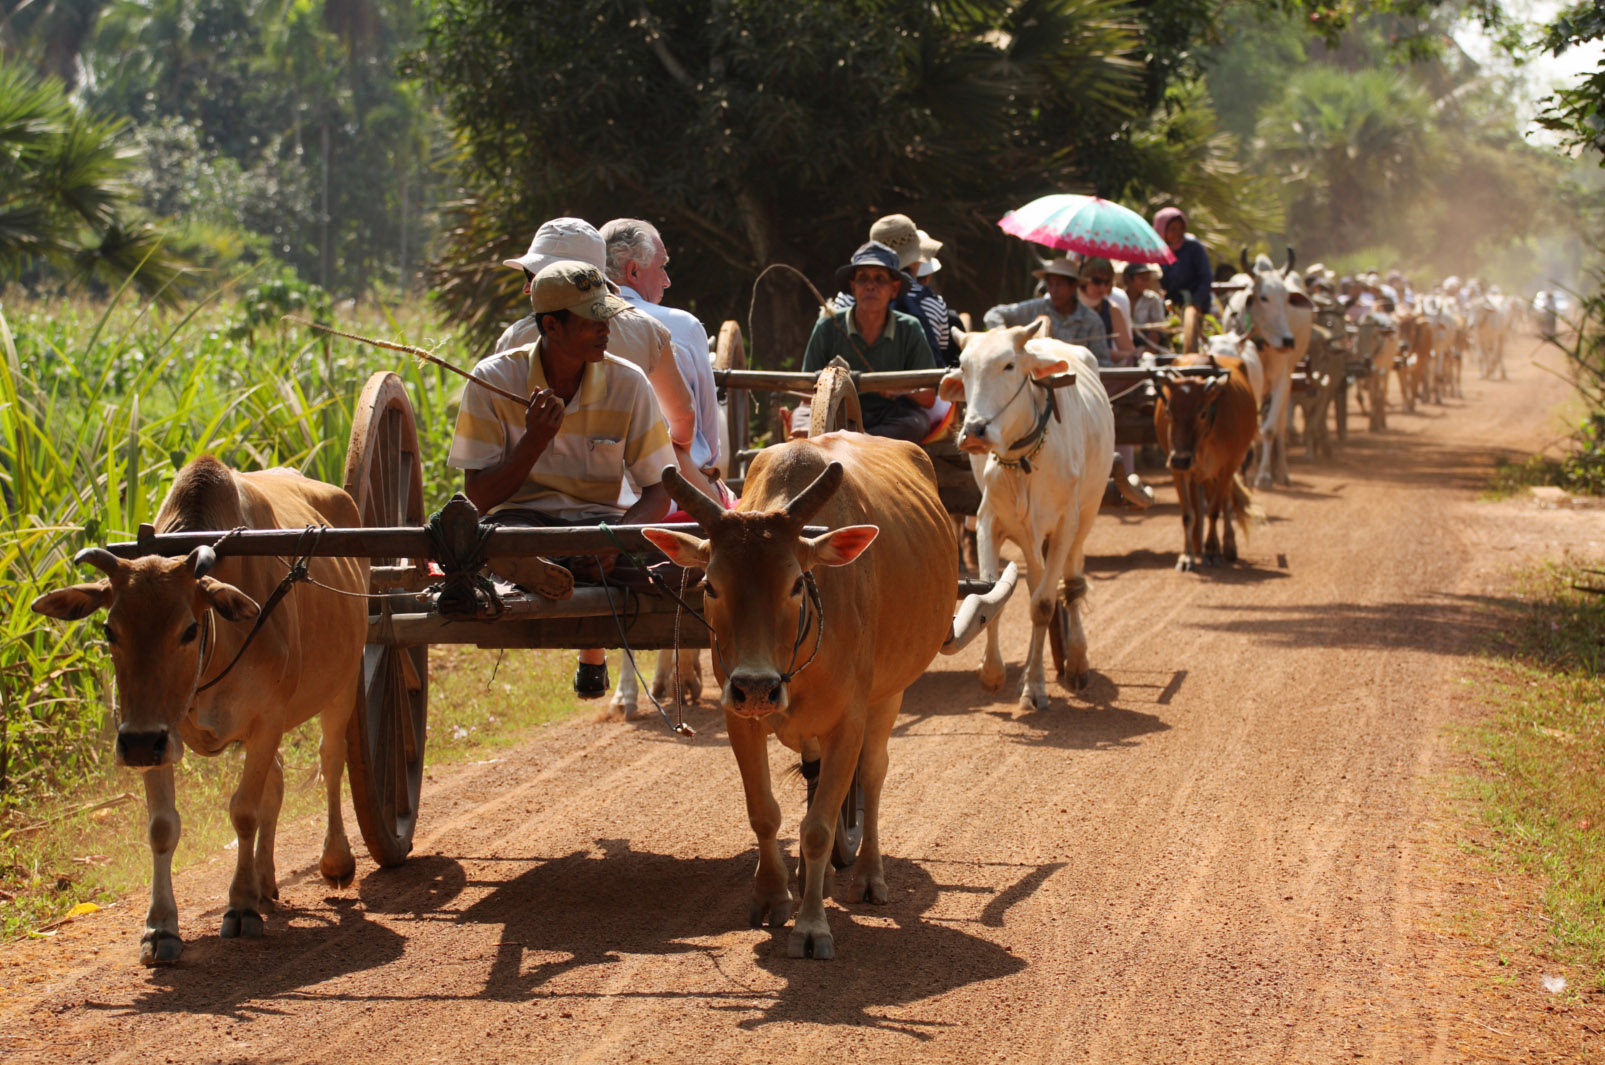 Ox cart ride in the countryside